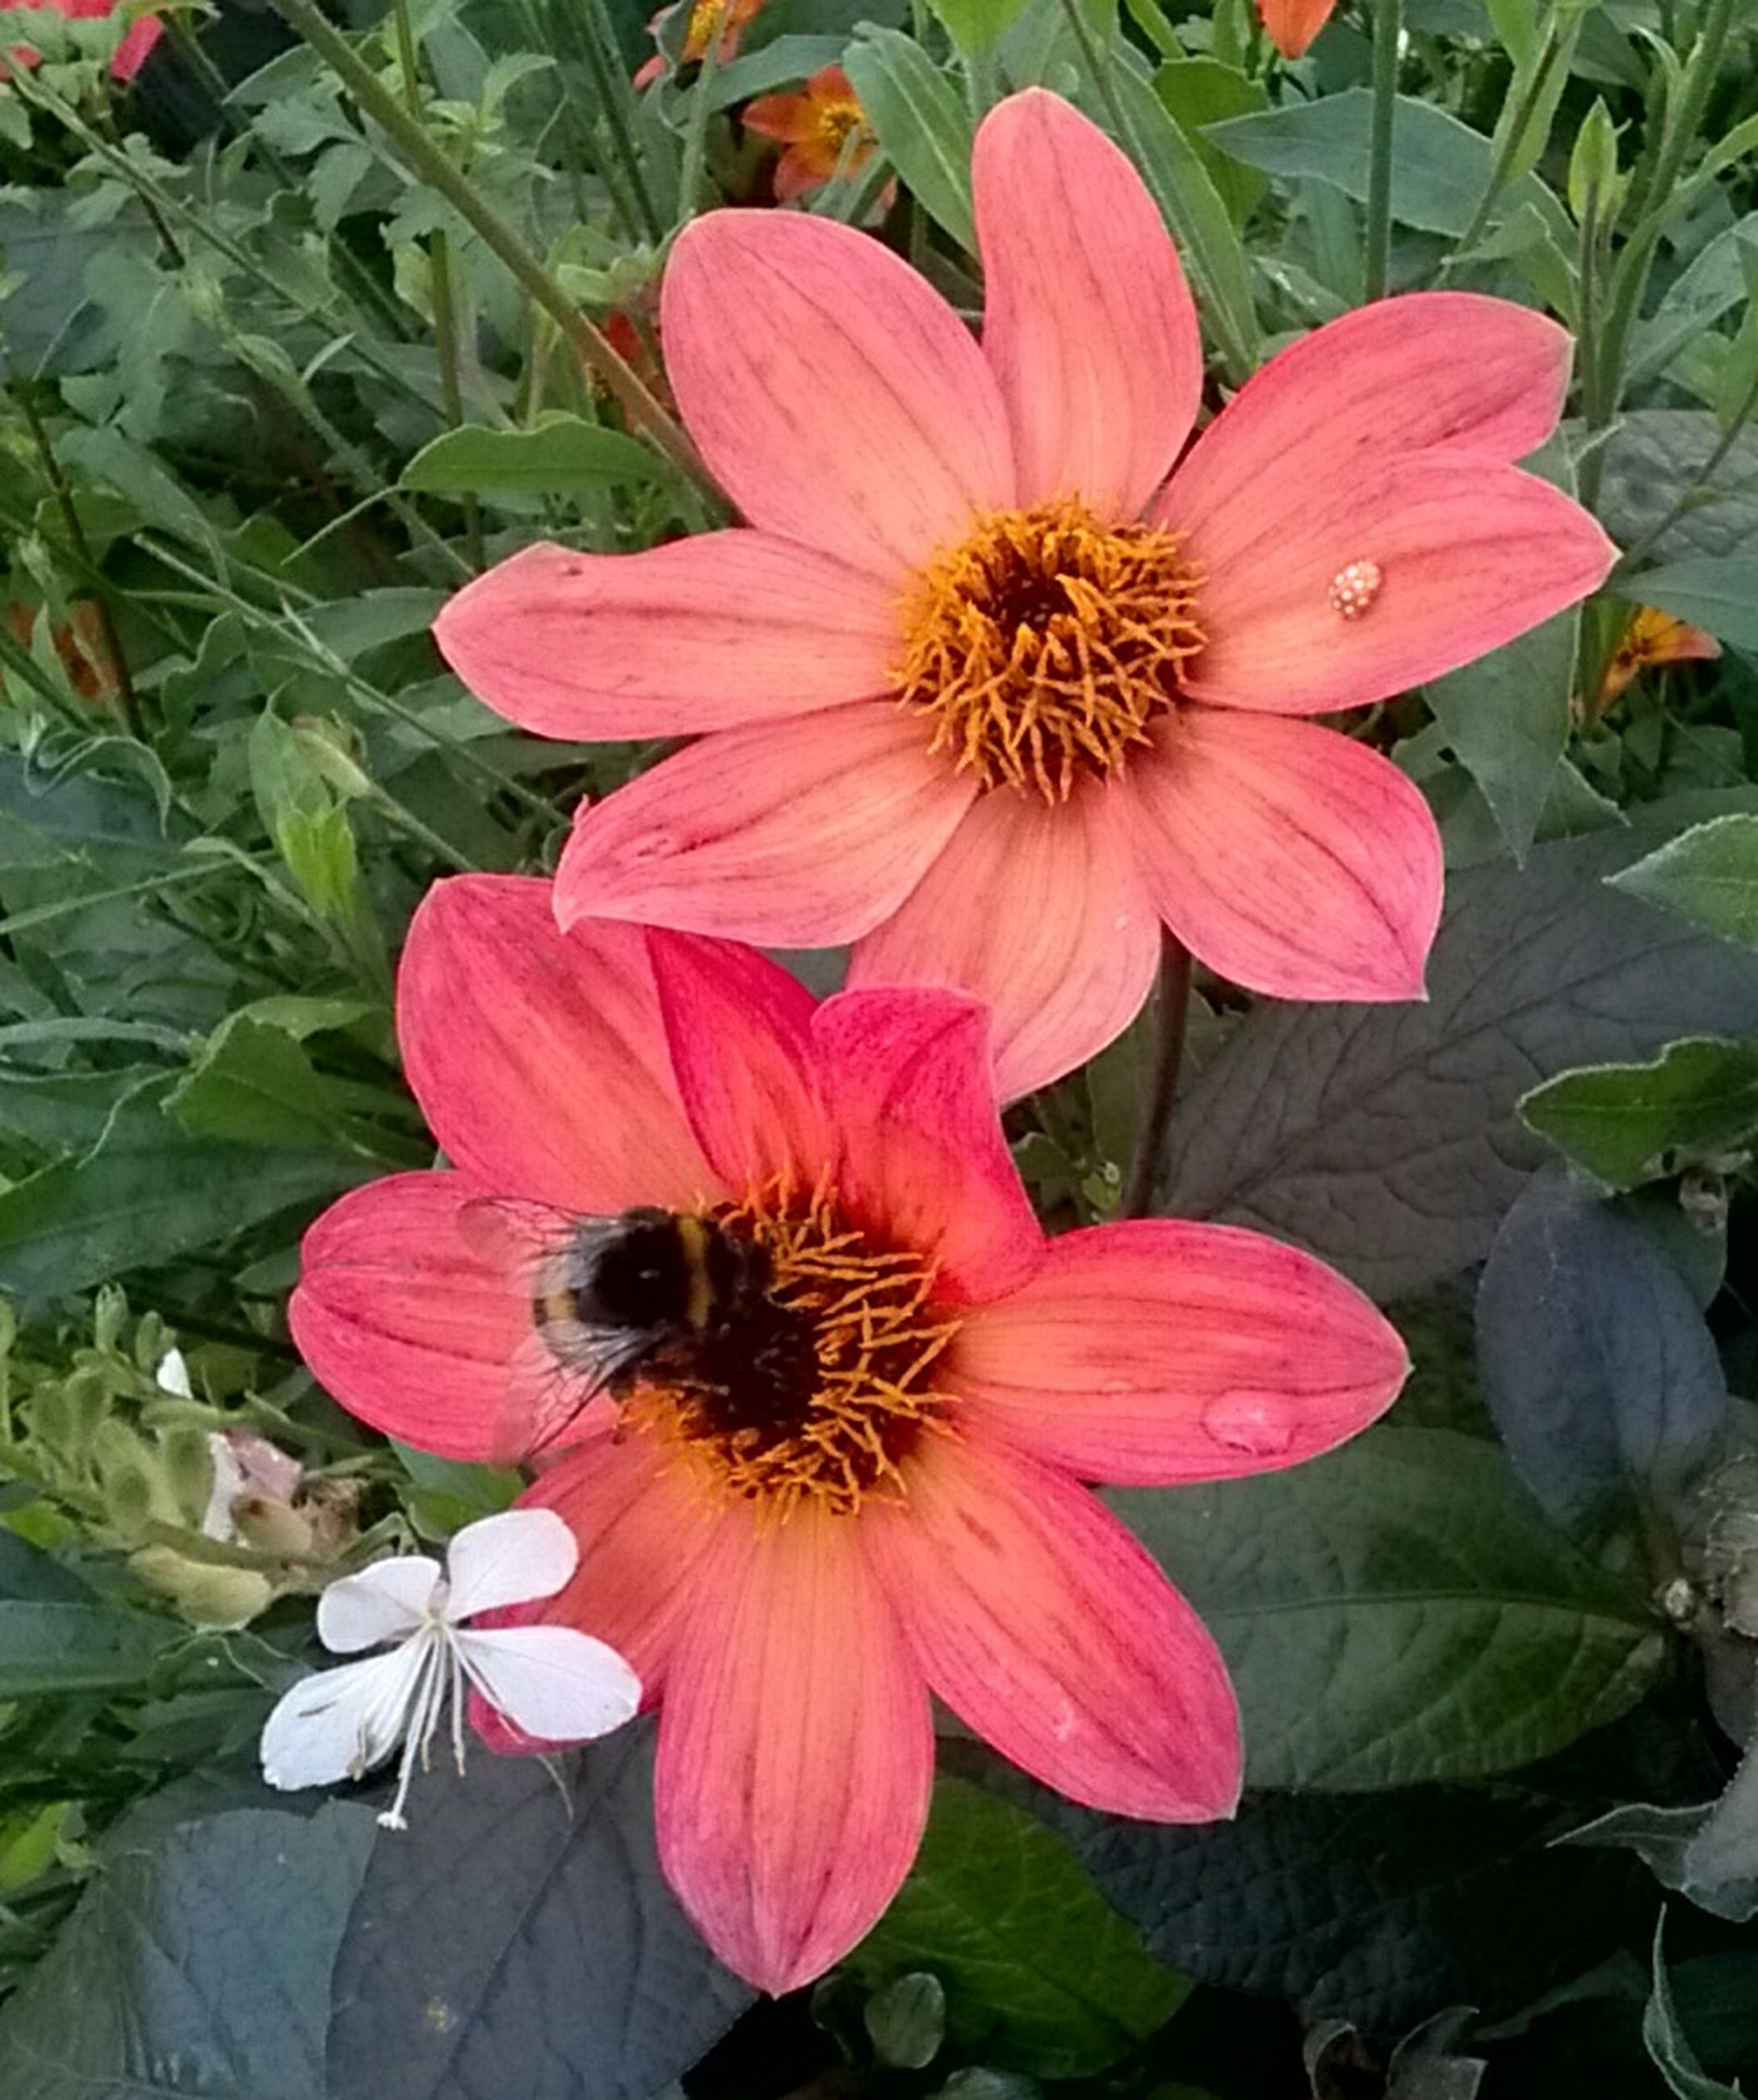 flower, flowering plant, petal, fragility, vulnerability, beauty in nature, flower head, inflorescence, freshness, growth, plant, animals in the wild, close-up, insect, bee, invertebrate, pollen, animal wildlife, high angle view, nature, pink color, pollination, no people, outdoors